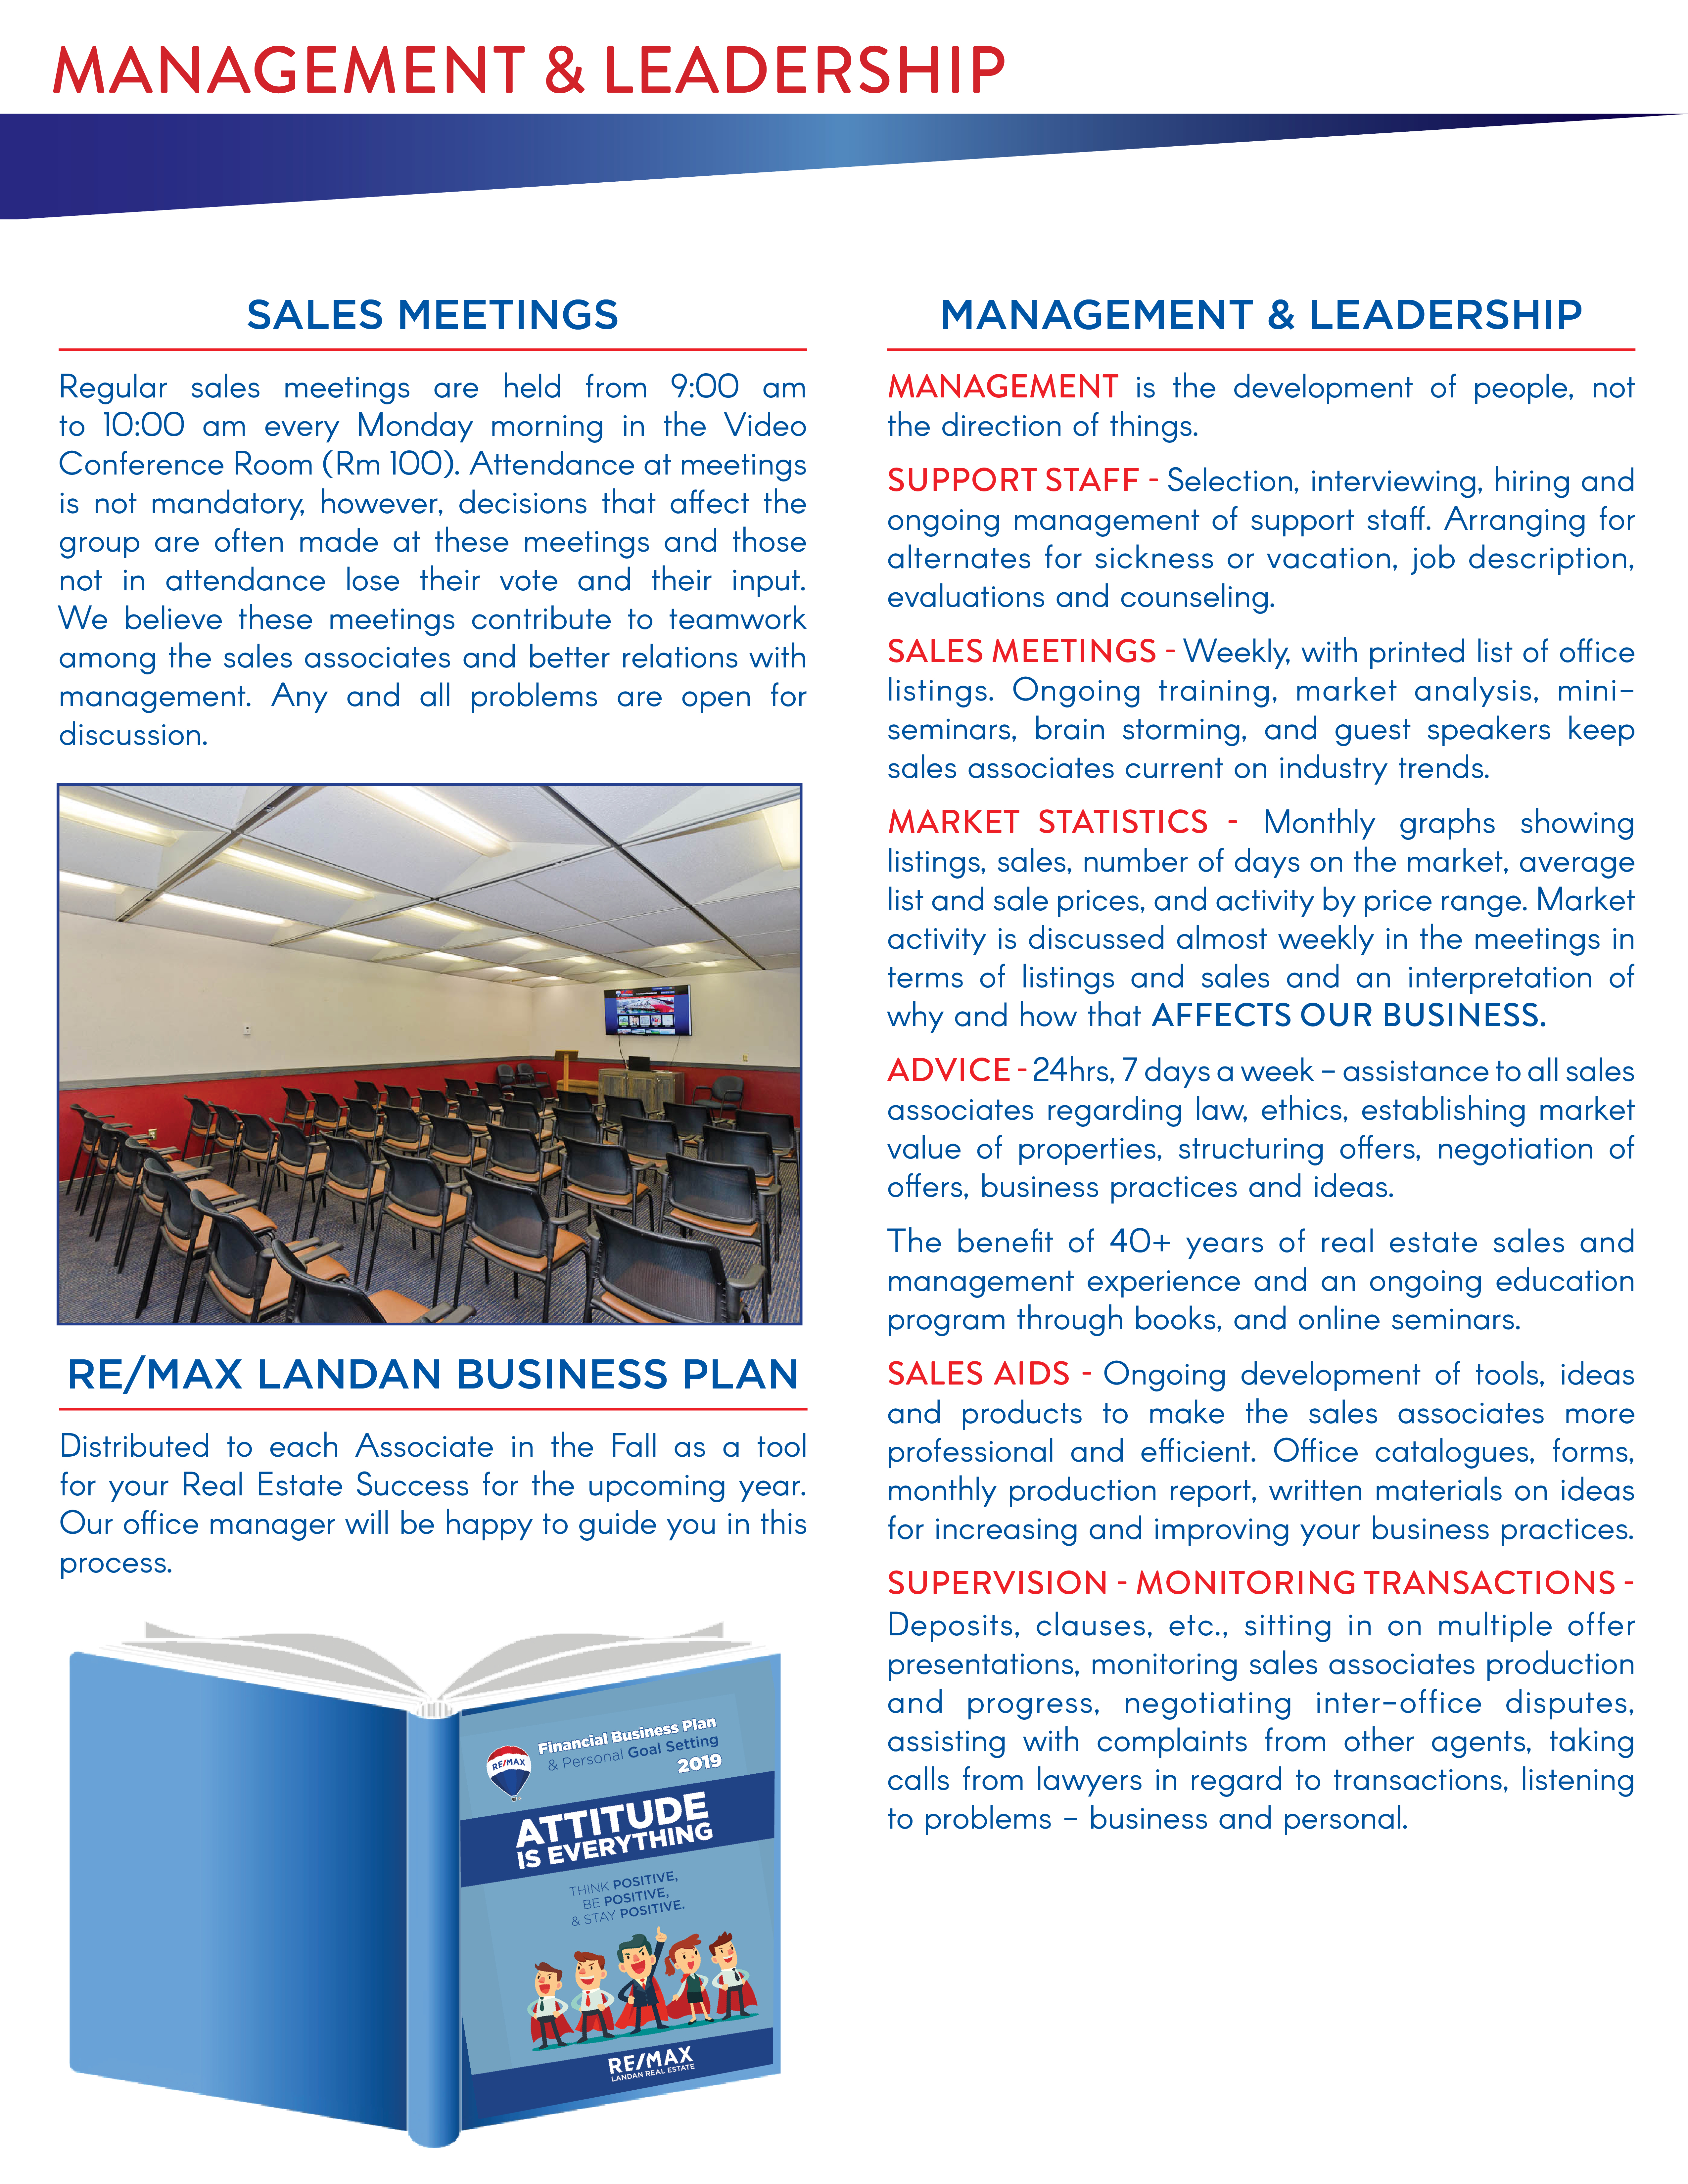 WEBIMAGES: Management and Leadership.jpg